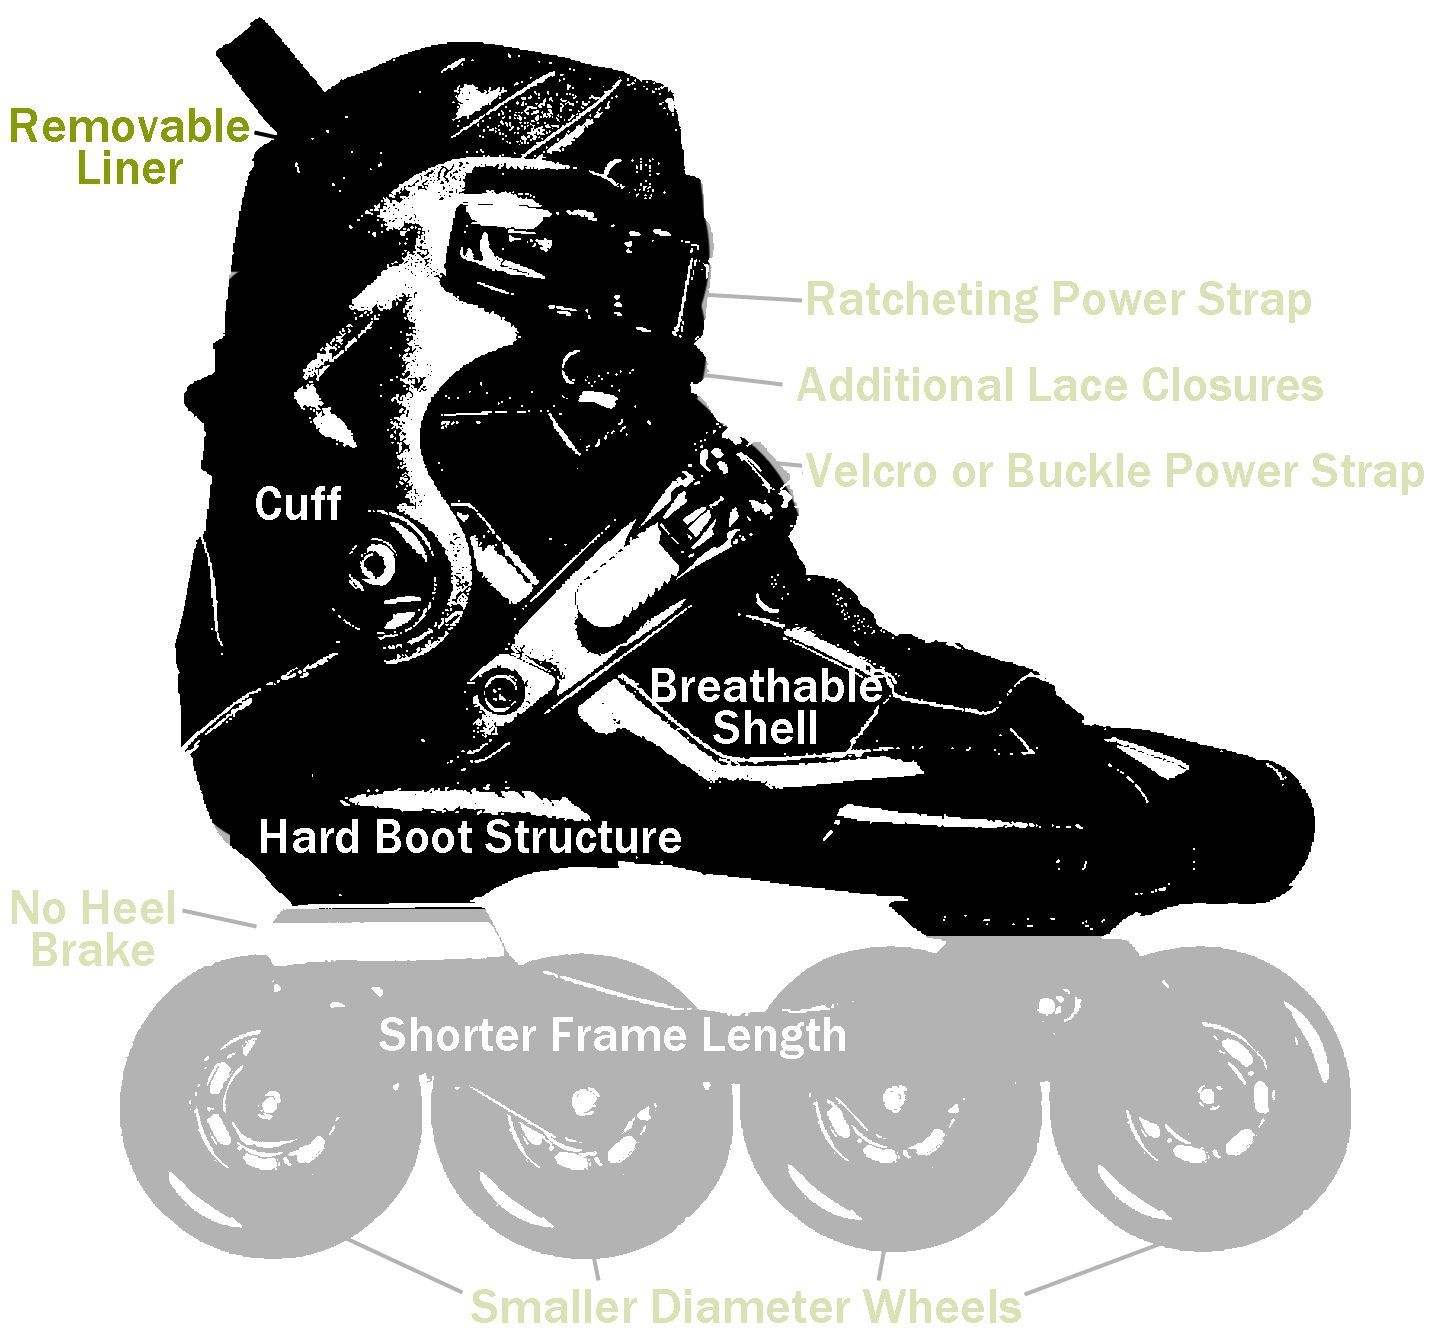 Learn about freestyle skates and slalom sports before you decide to buy equipment.